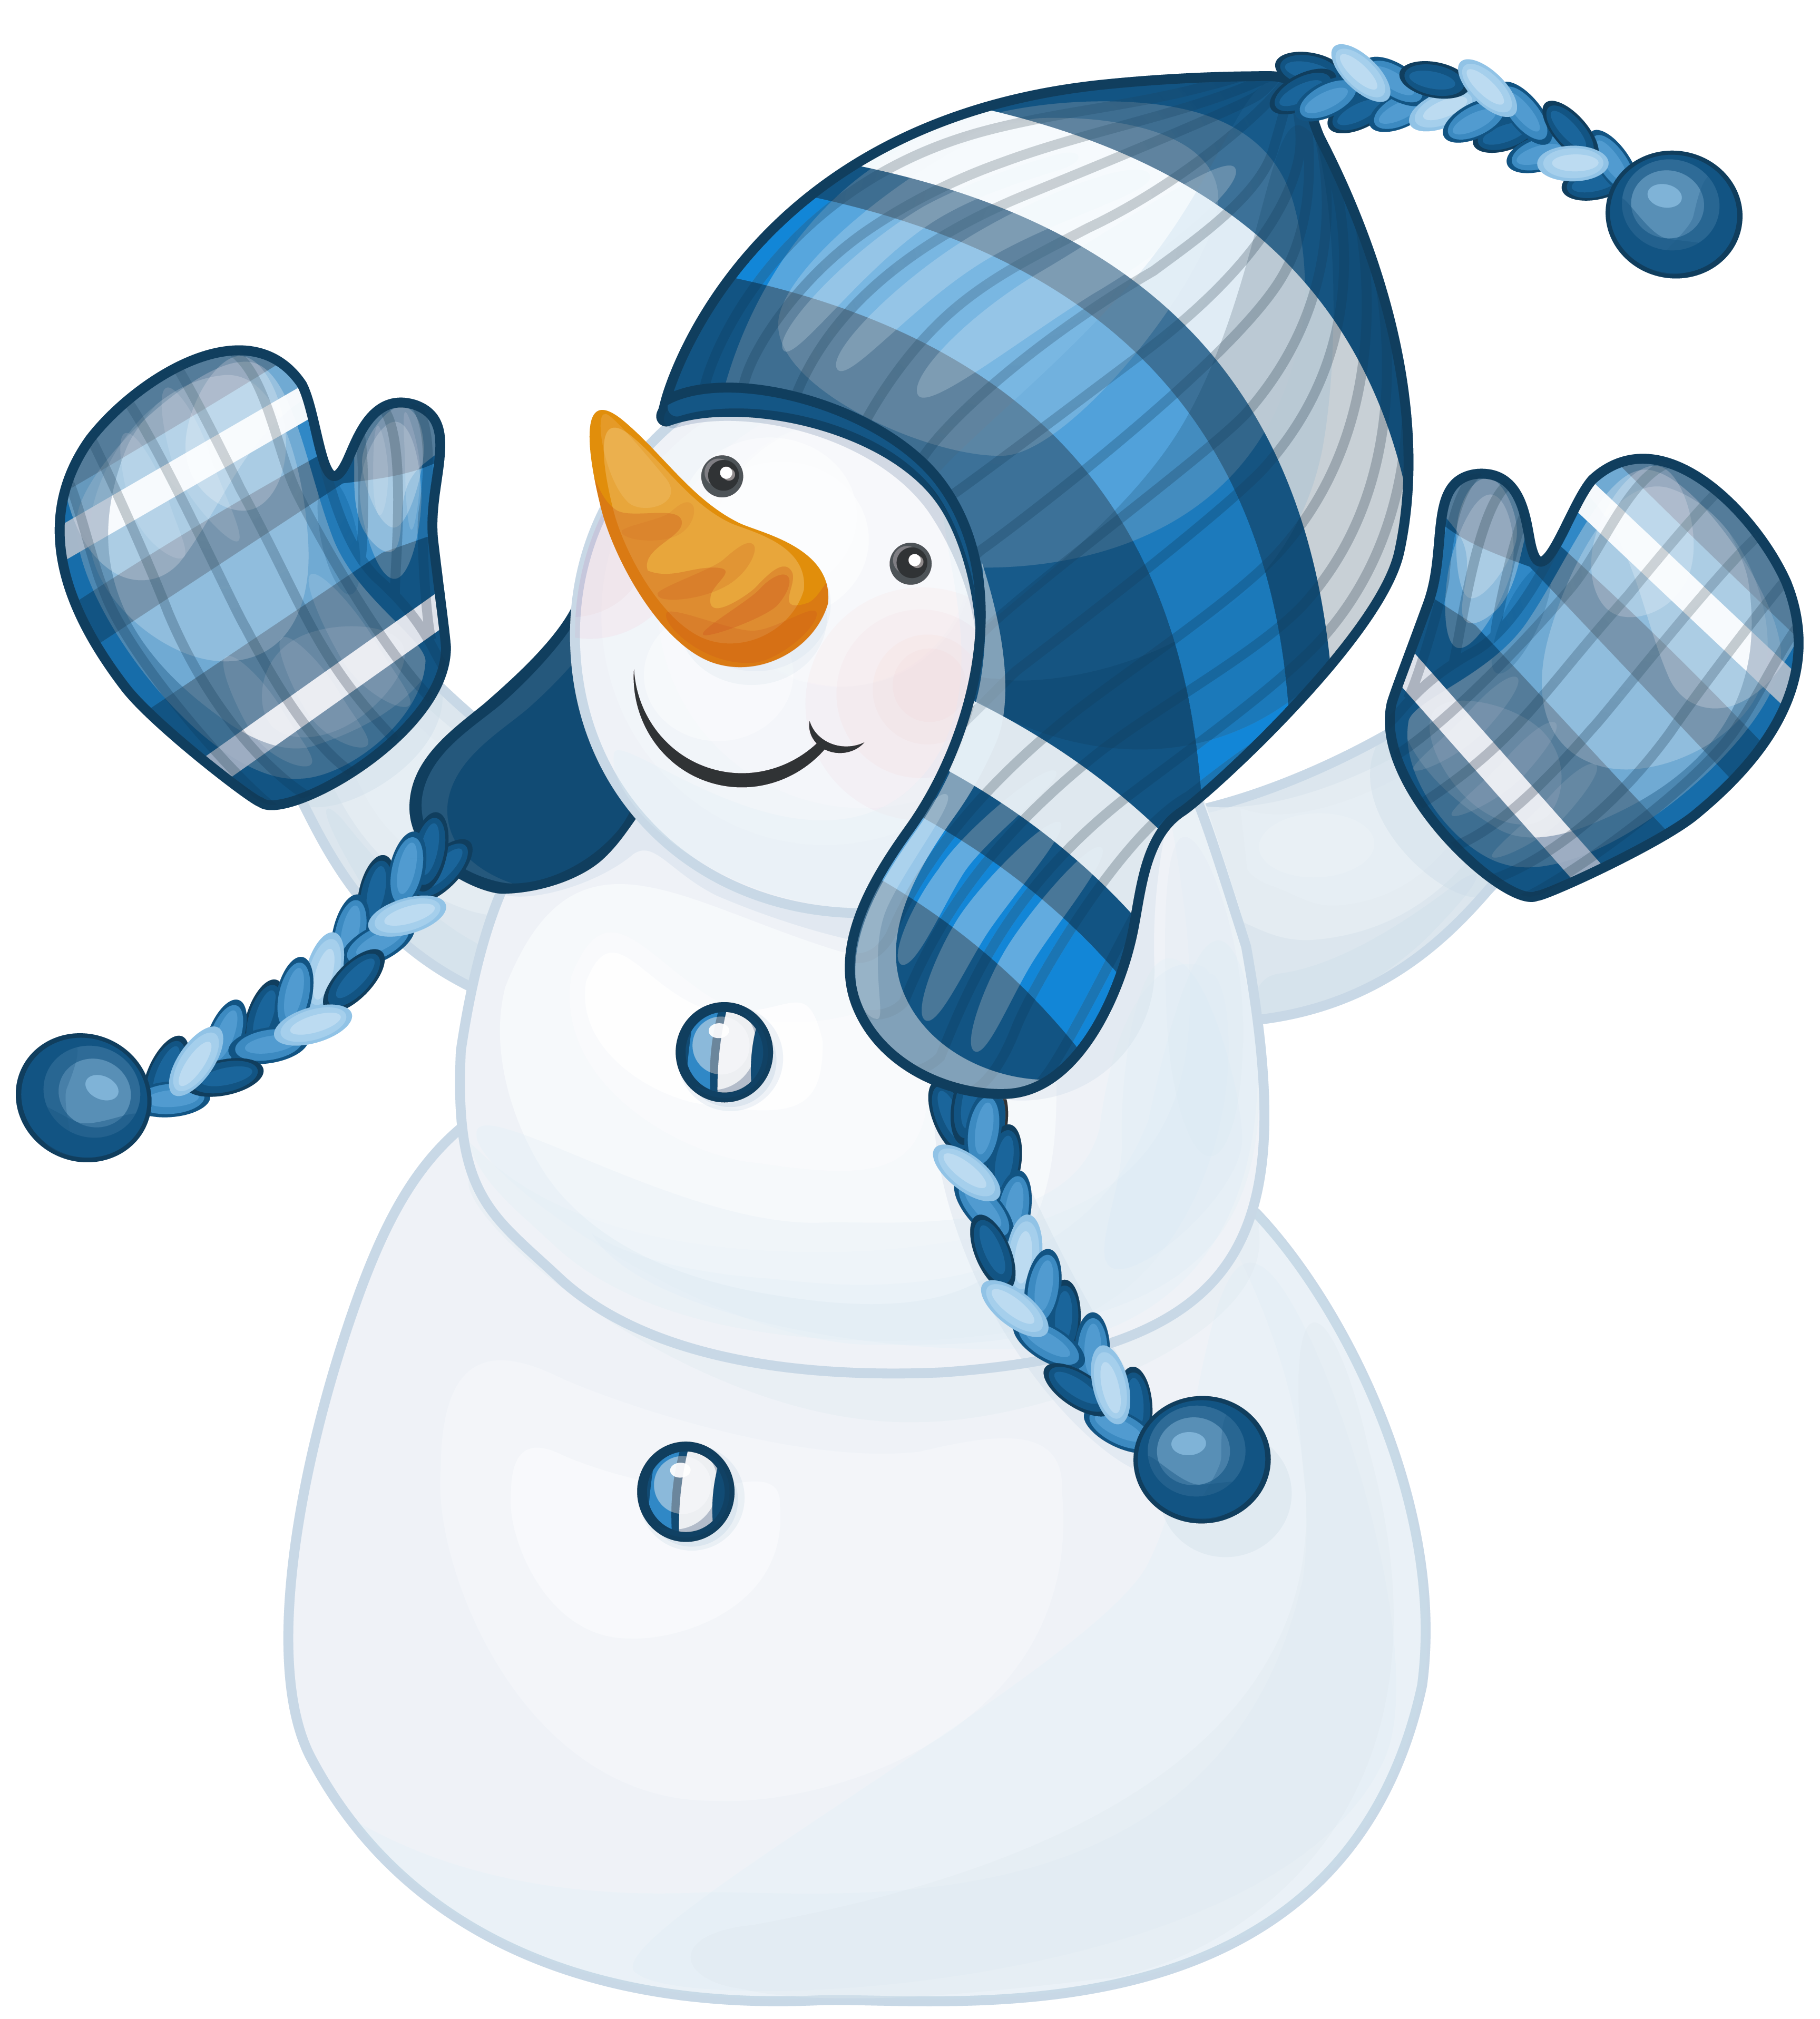 Snowman book clipart vector free stock 33+ Cool Snowman Background vector free stock